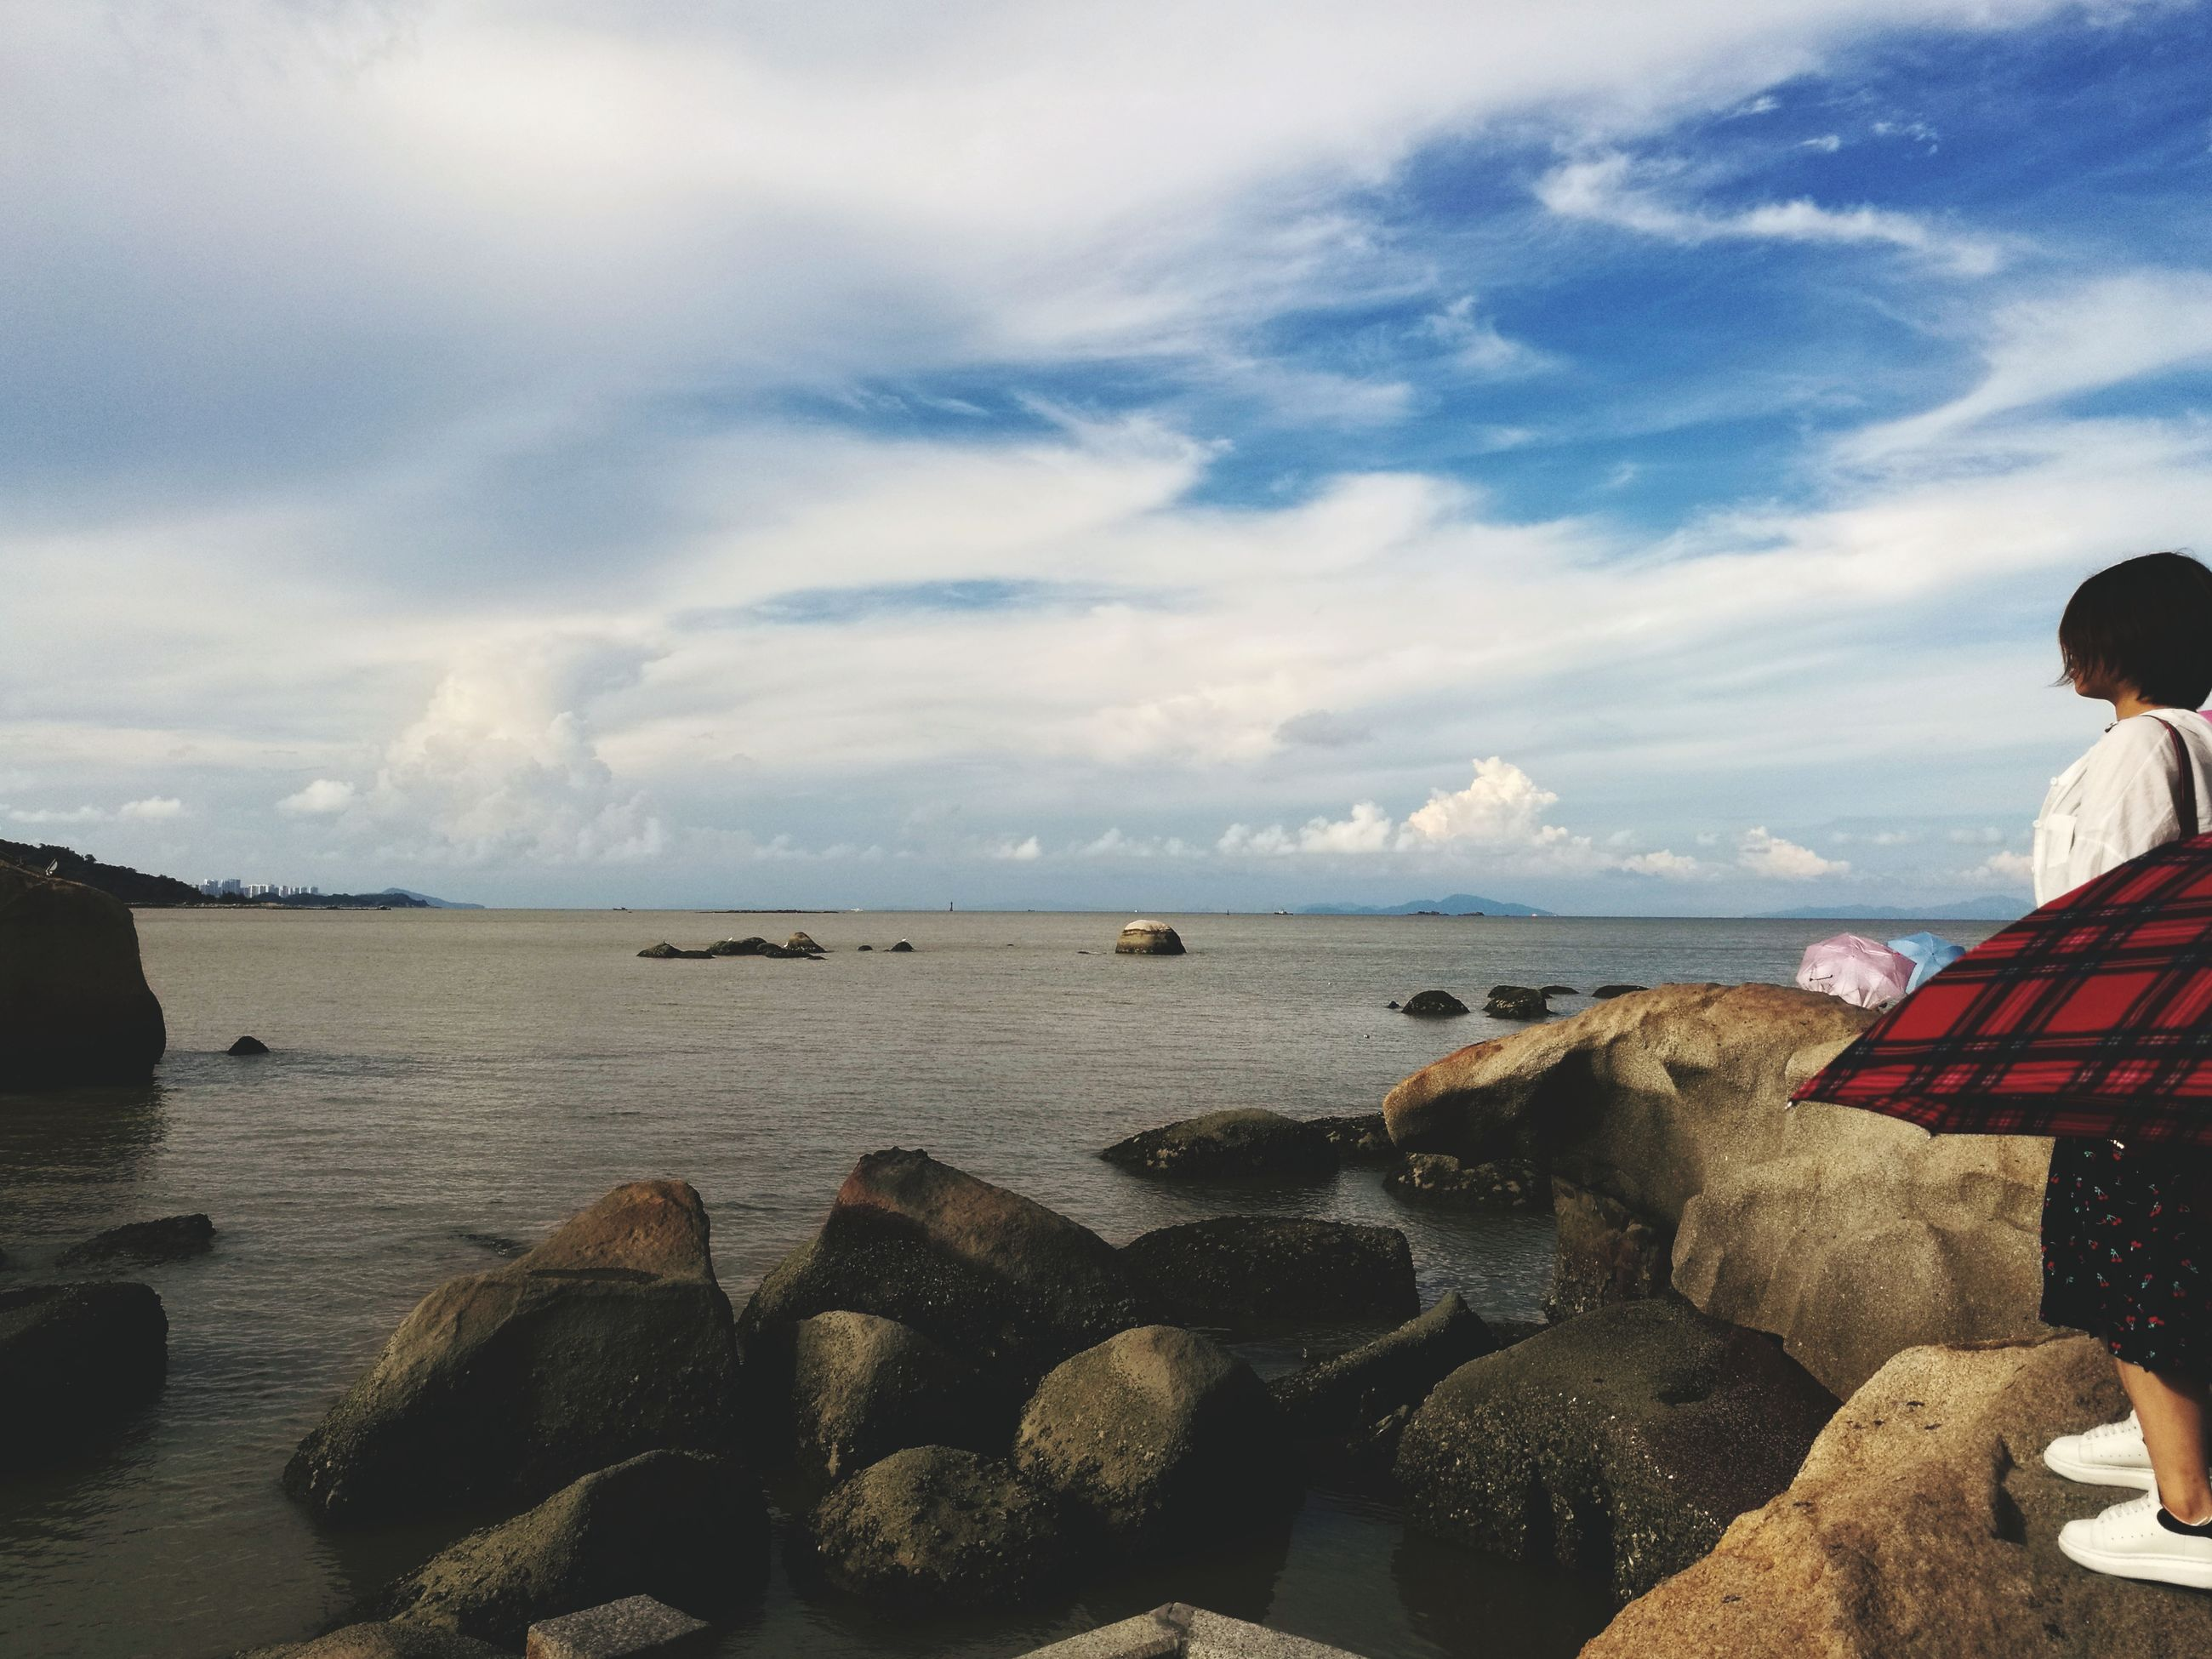 sea, water, sky, nature, rock - object, horizon over water, cloud - sky, scenics, tranquil scene, outdoors, tranquility, real people, day, sitting, beauty in nature, beach, vacations, standing, men, pebble beach, people